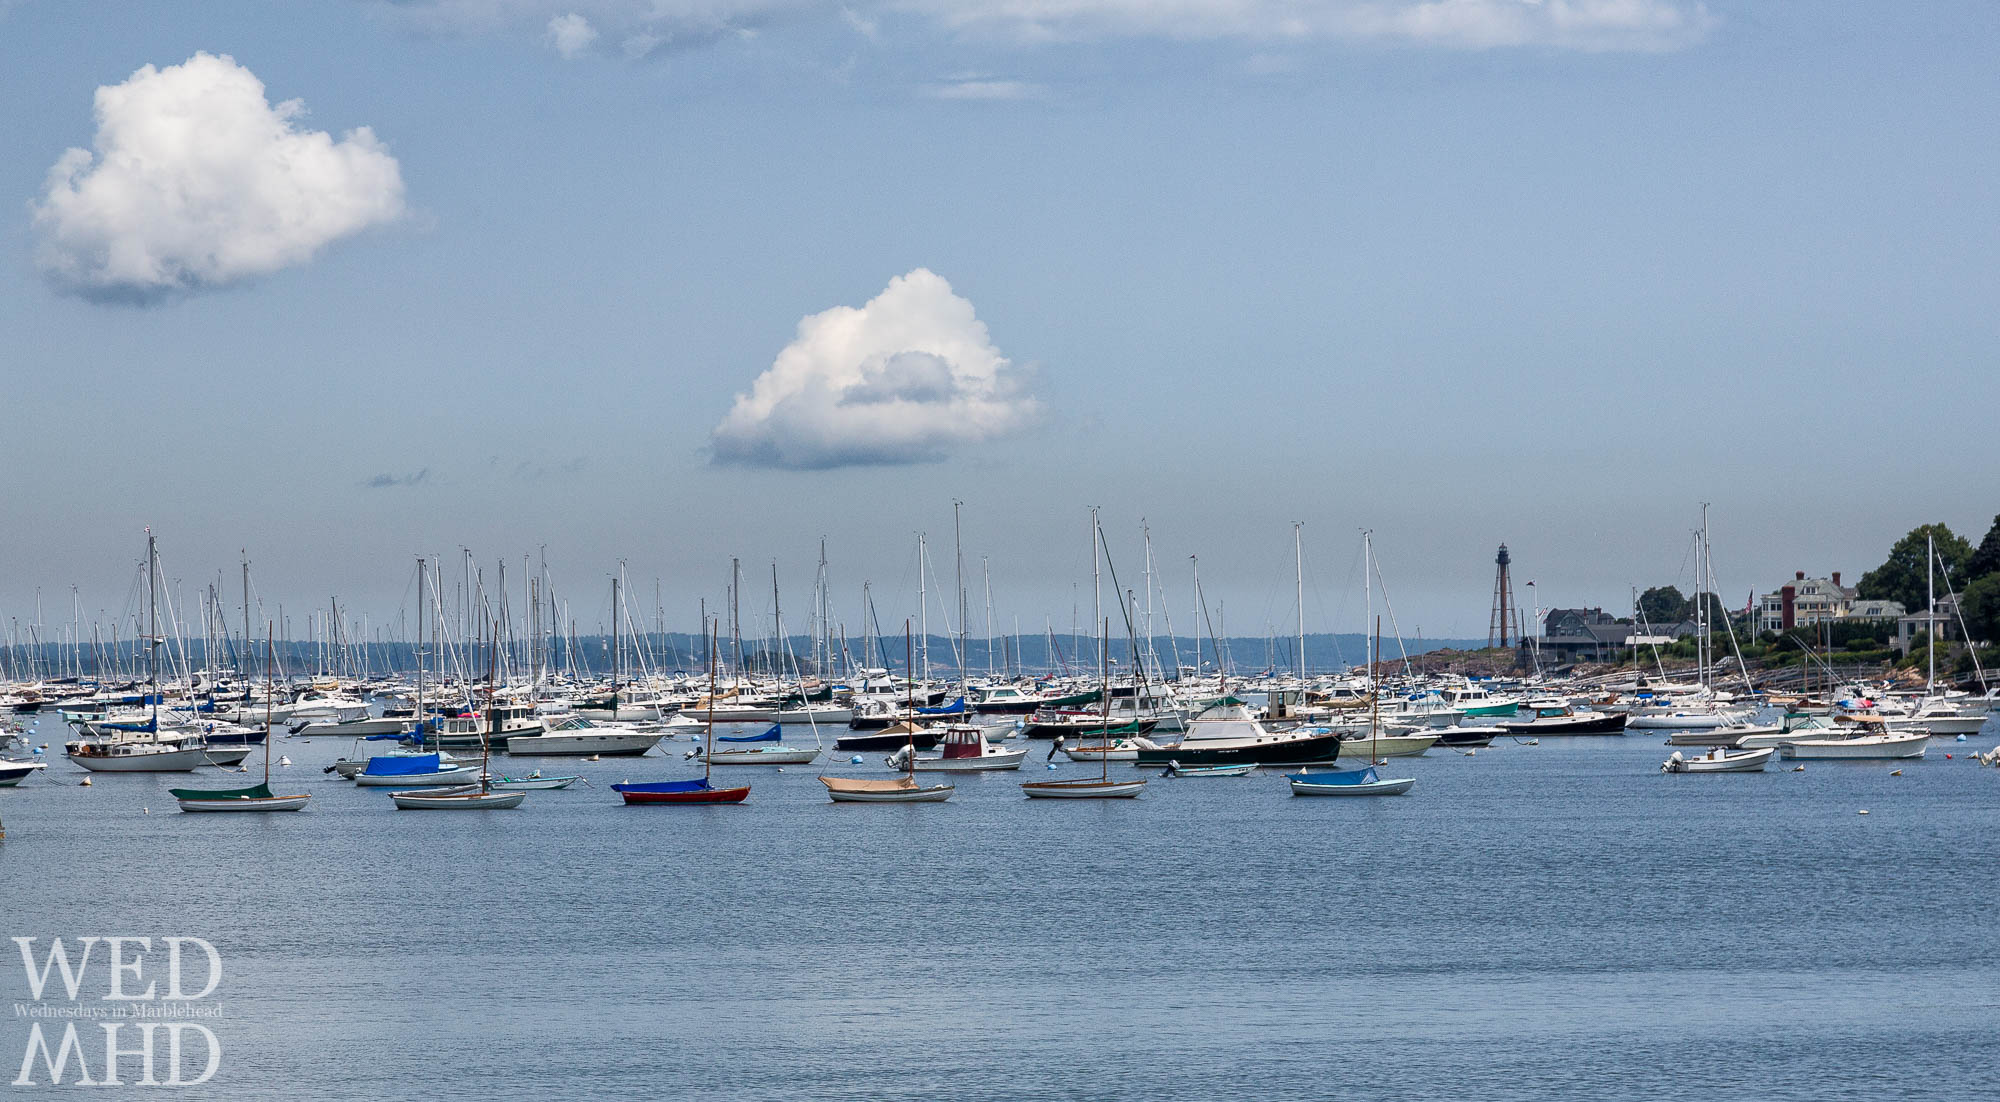 Two clouds over a full Marblehead harbor with town class sailboats in the foreground and Marblehead Light standing tall